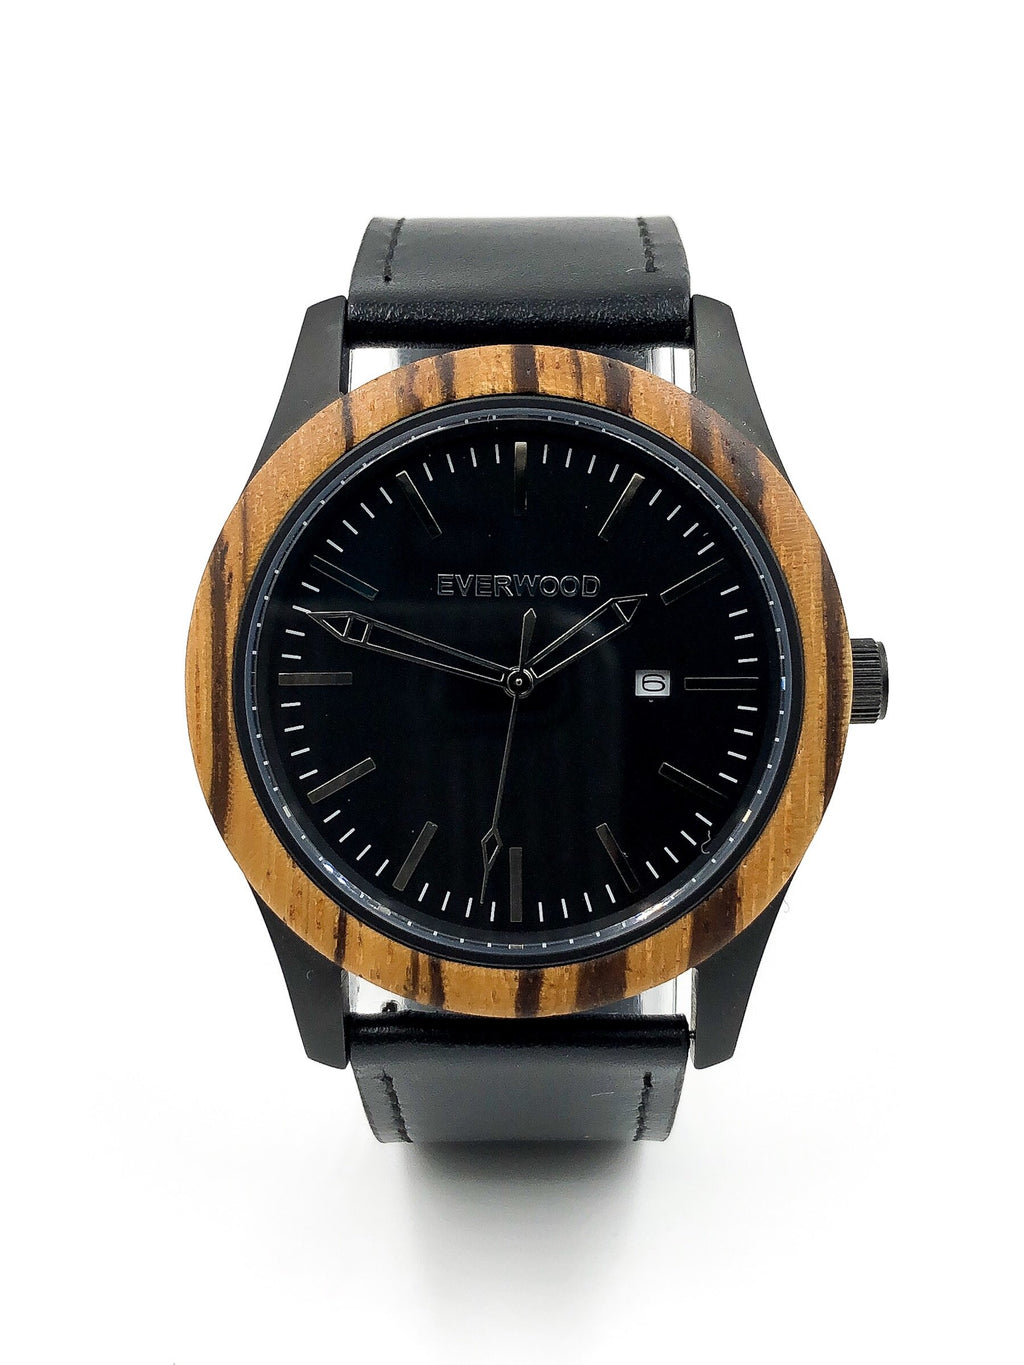 EVERWOOD Inverness in Zebrawood and Black Leather